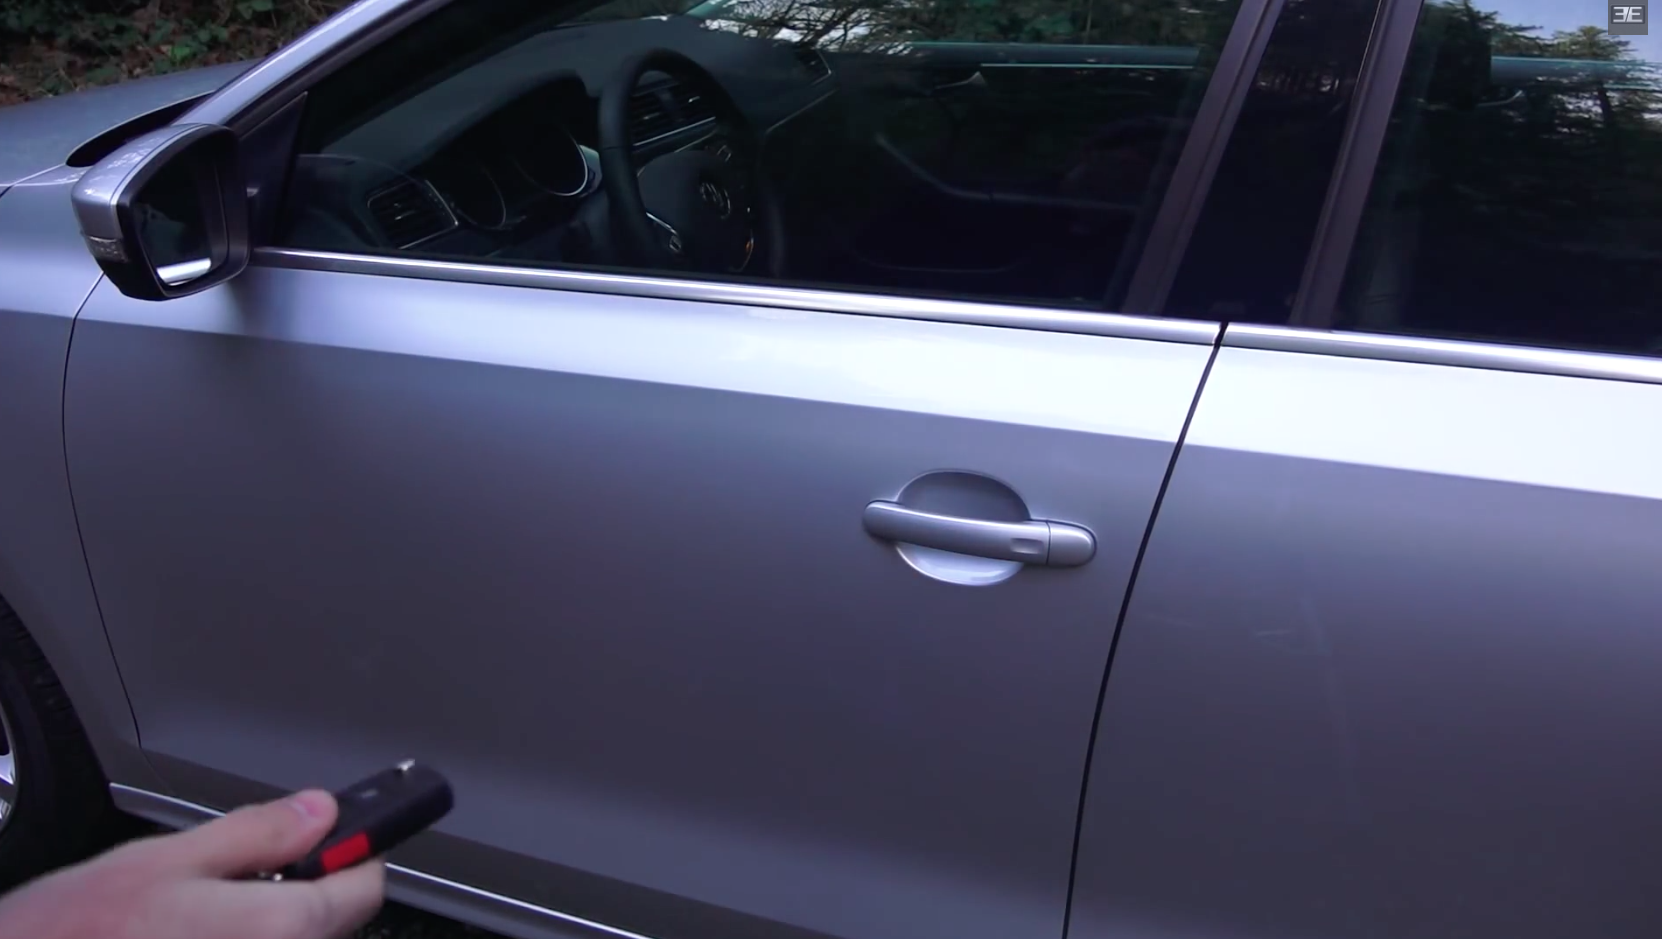 2015 Jetta Key lock